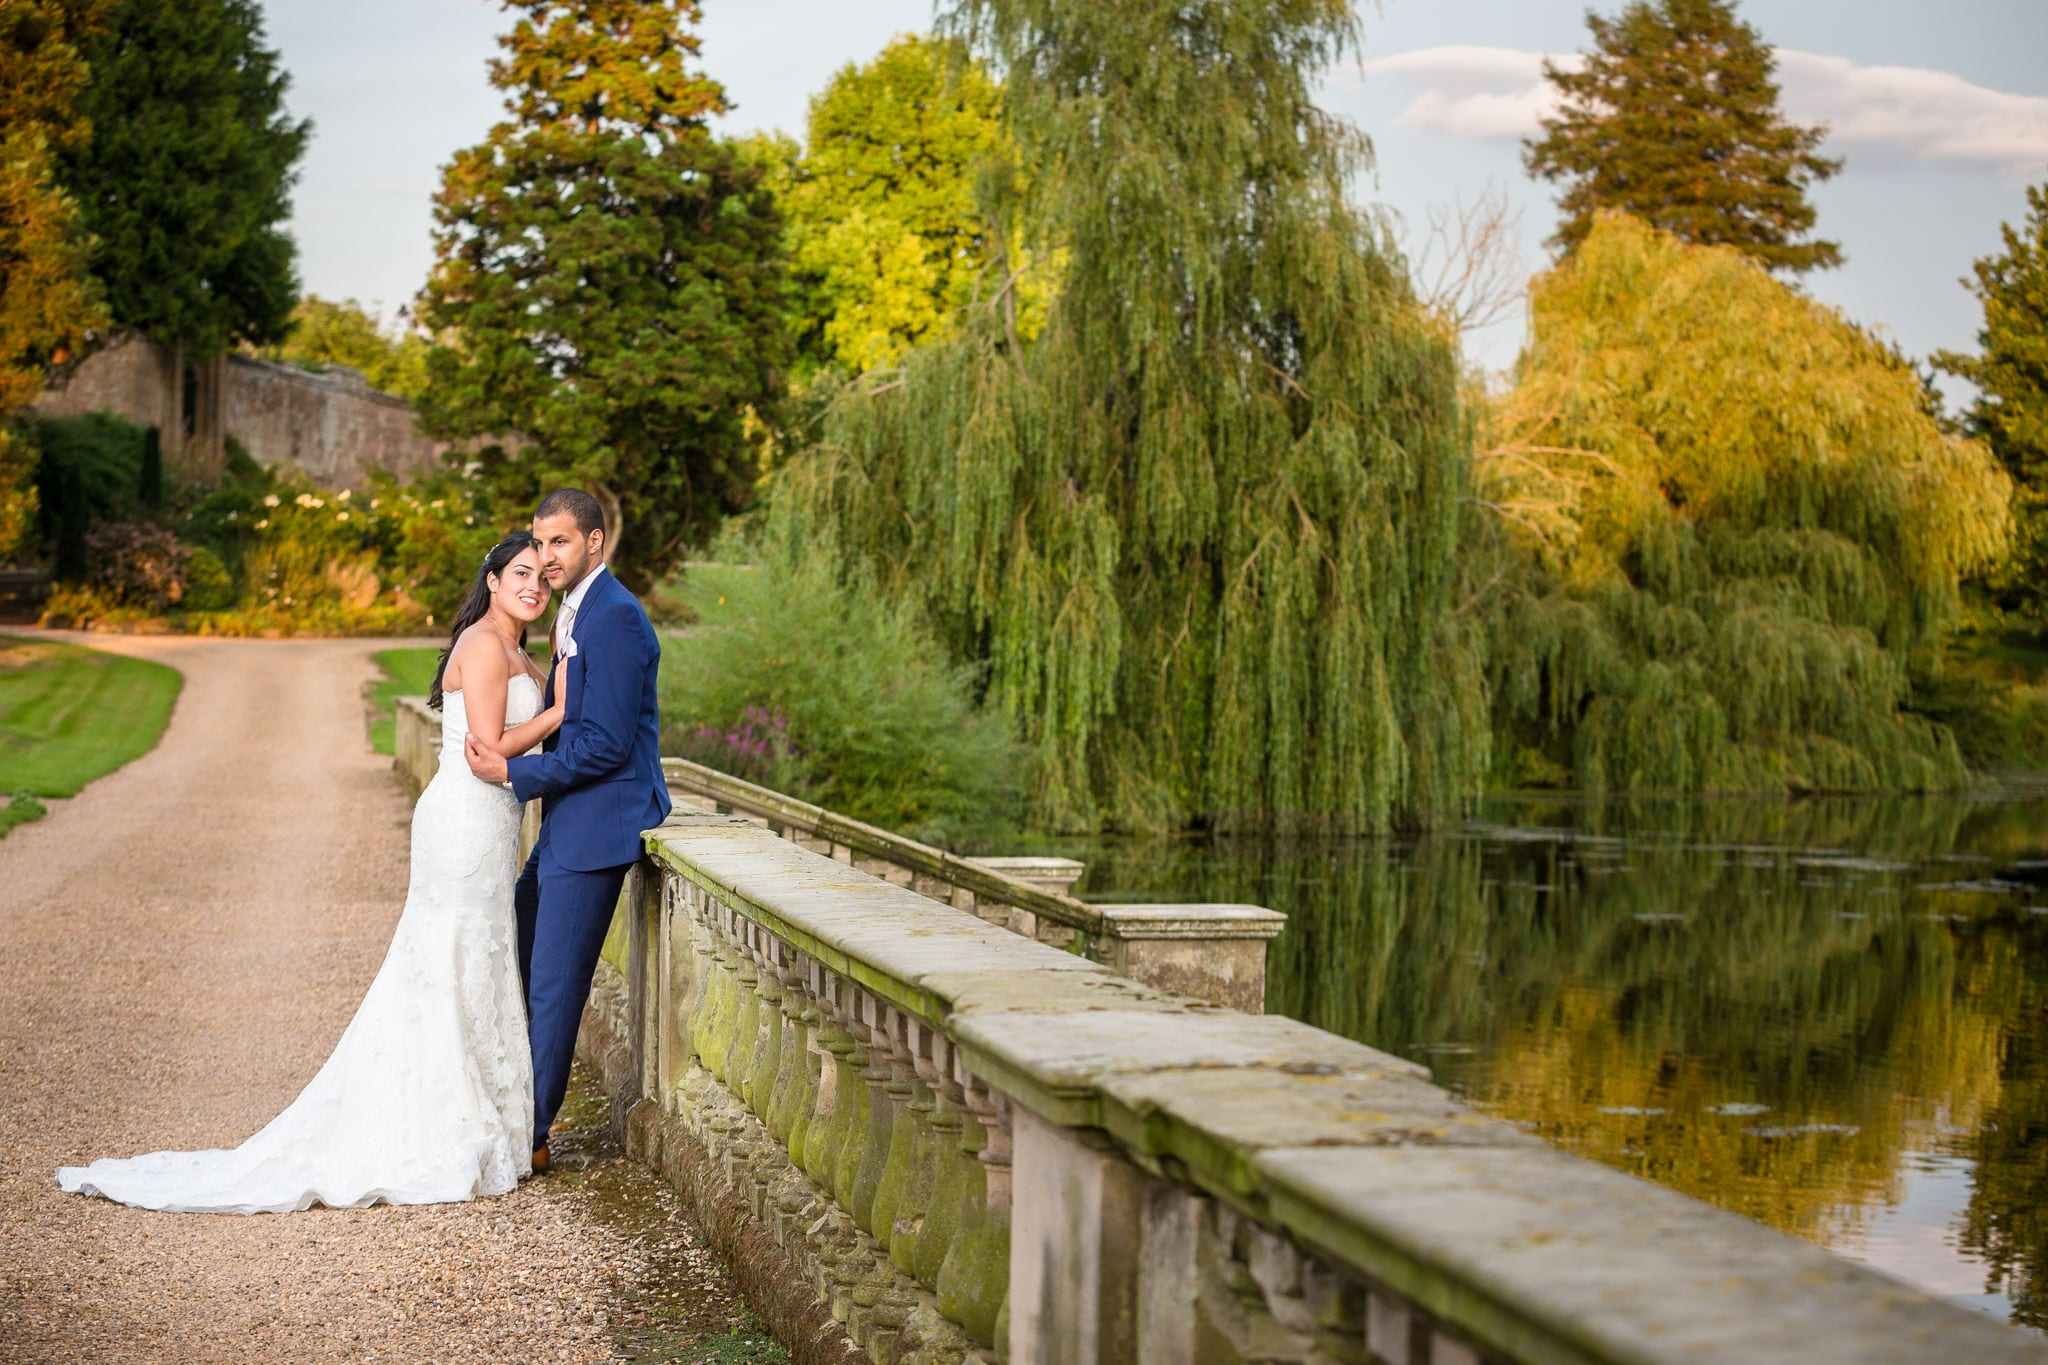 A bride and groom coming together for a photo in front of a beautiful river and trees. by Stoneleigh Abbey Wedding Photographer, S2 Images